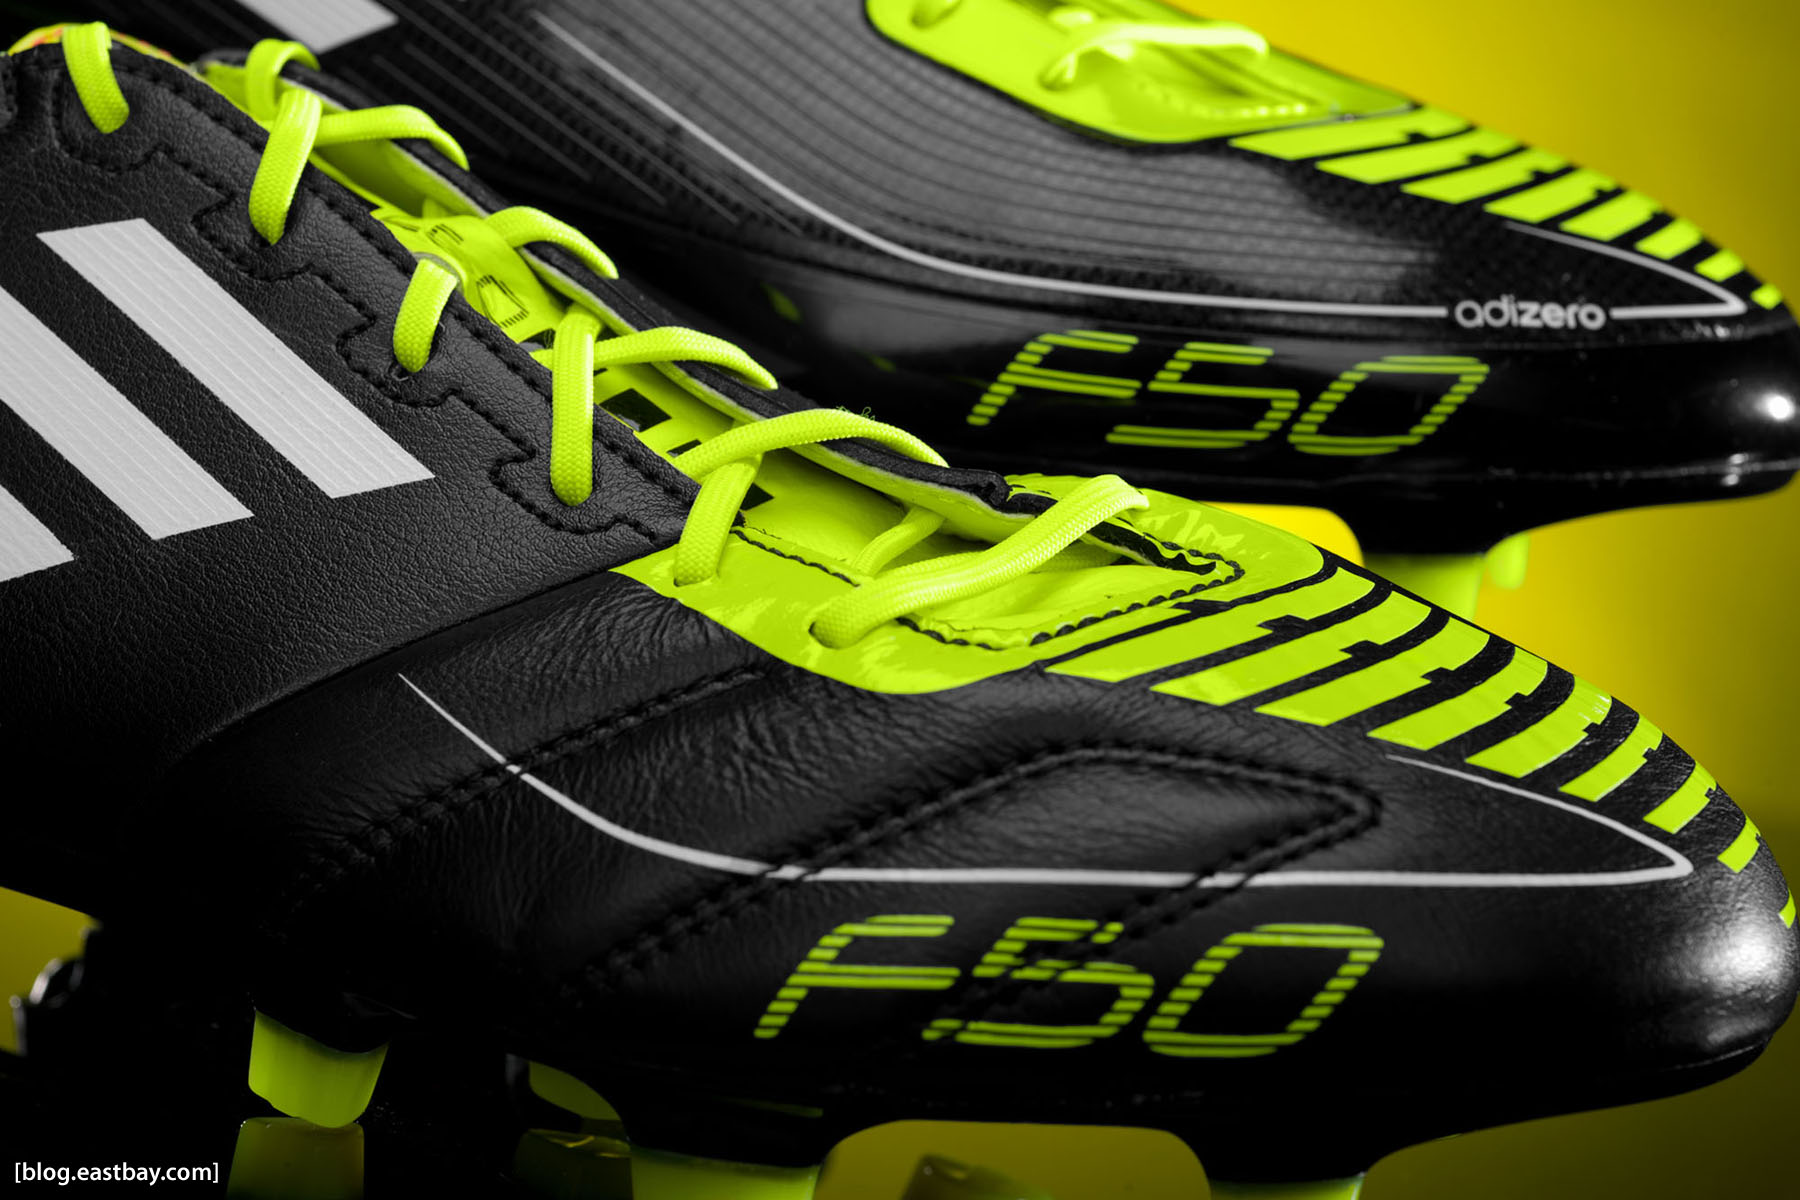 f50 1200 trx and david graphic f50 day adidas months